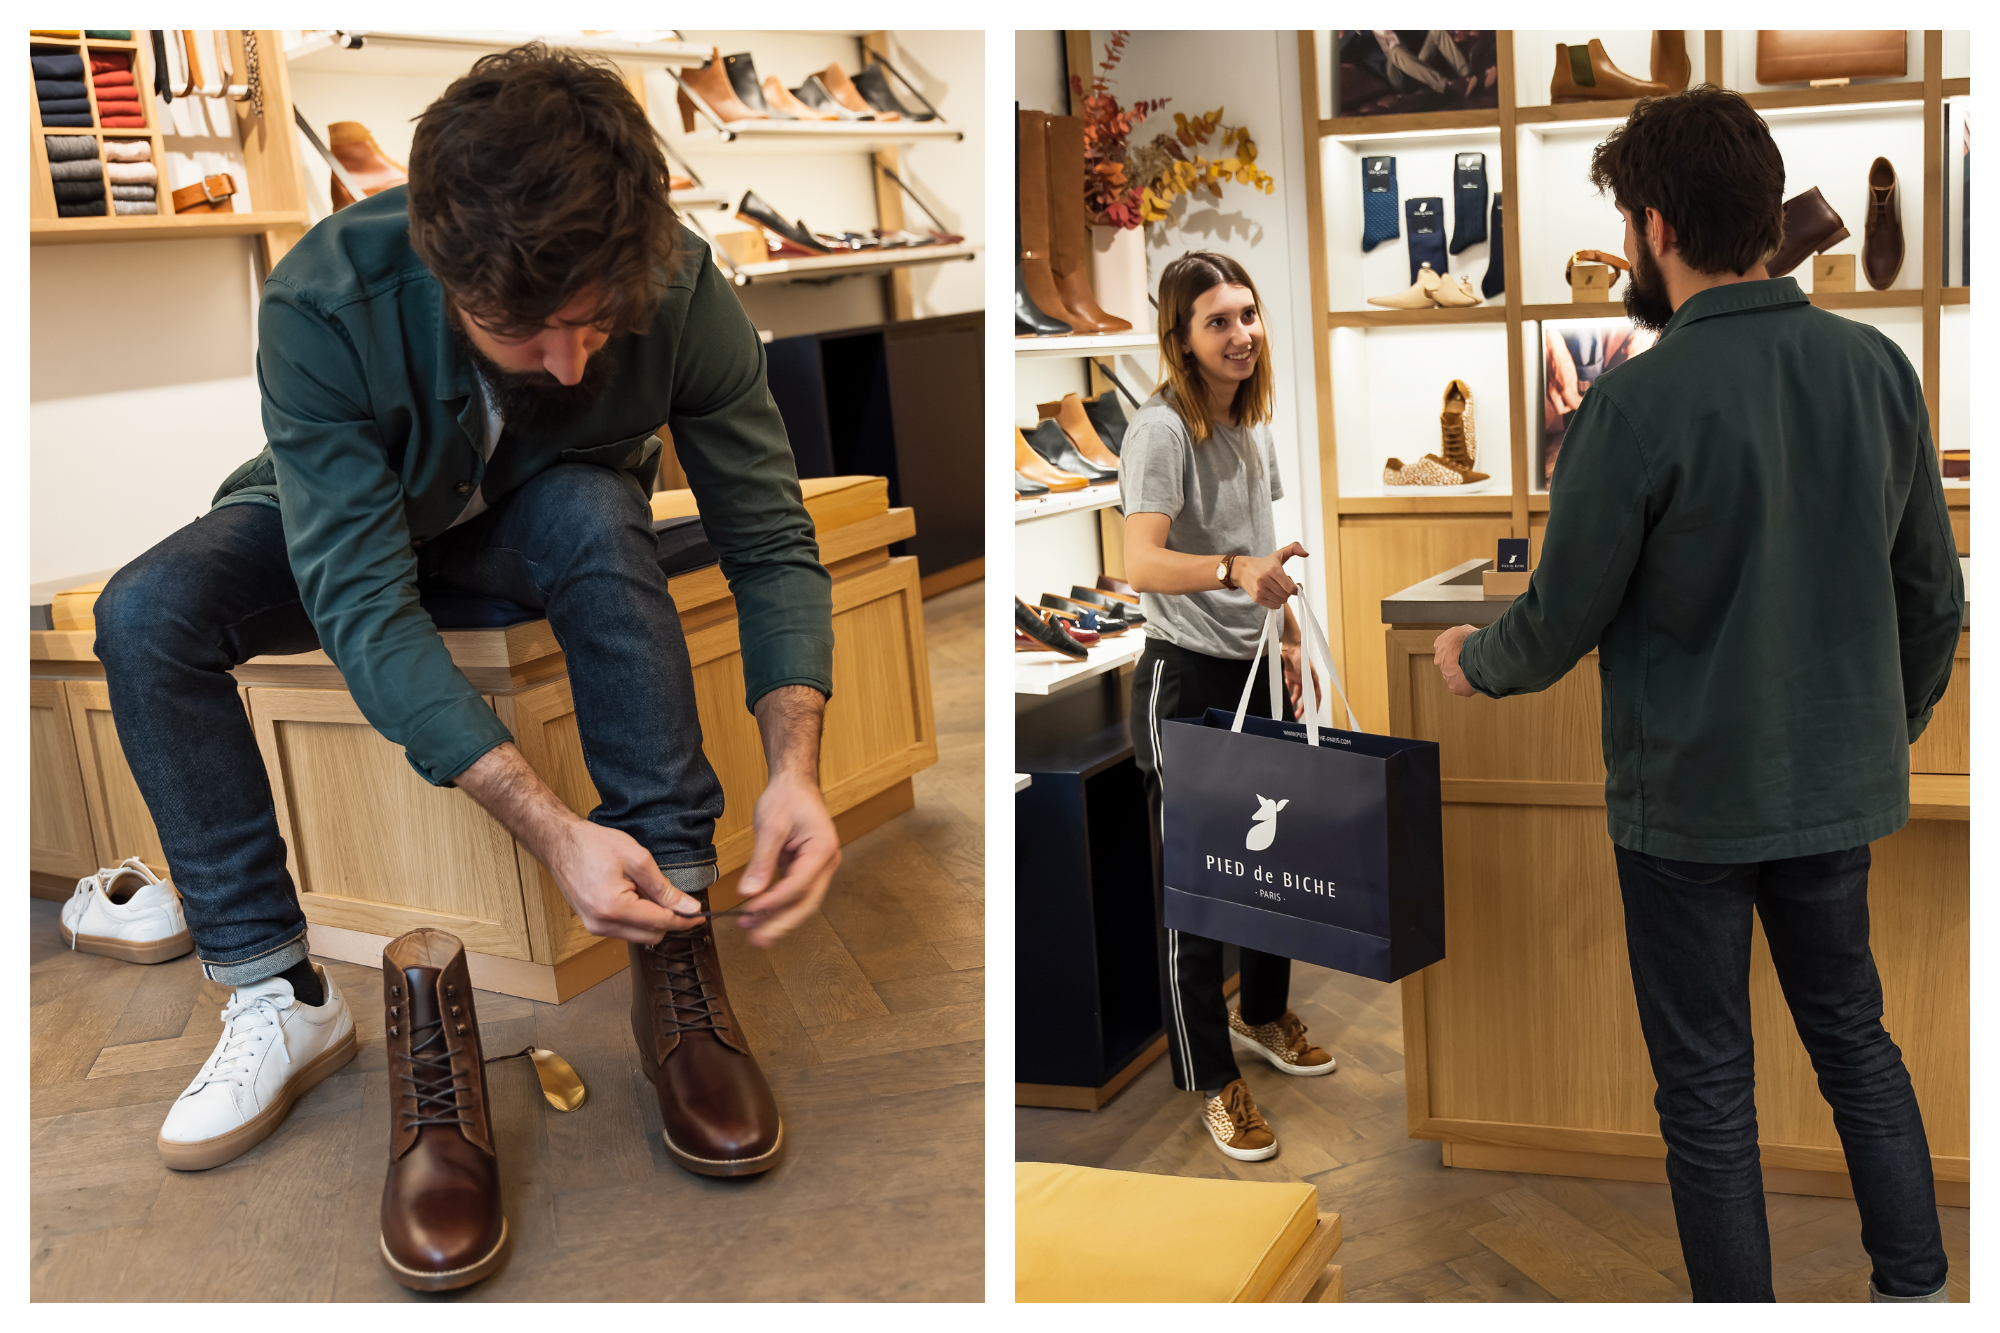 A man wearing an open green shirt trying on beautiful brown leather boots at Pied de Biche in Paris (left). Shop assistant hands customer a pair of shoes in a bag at Pied de Biche (right).